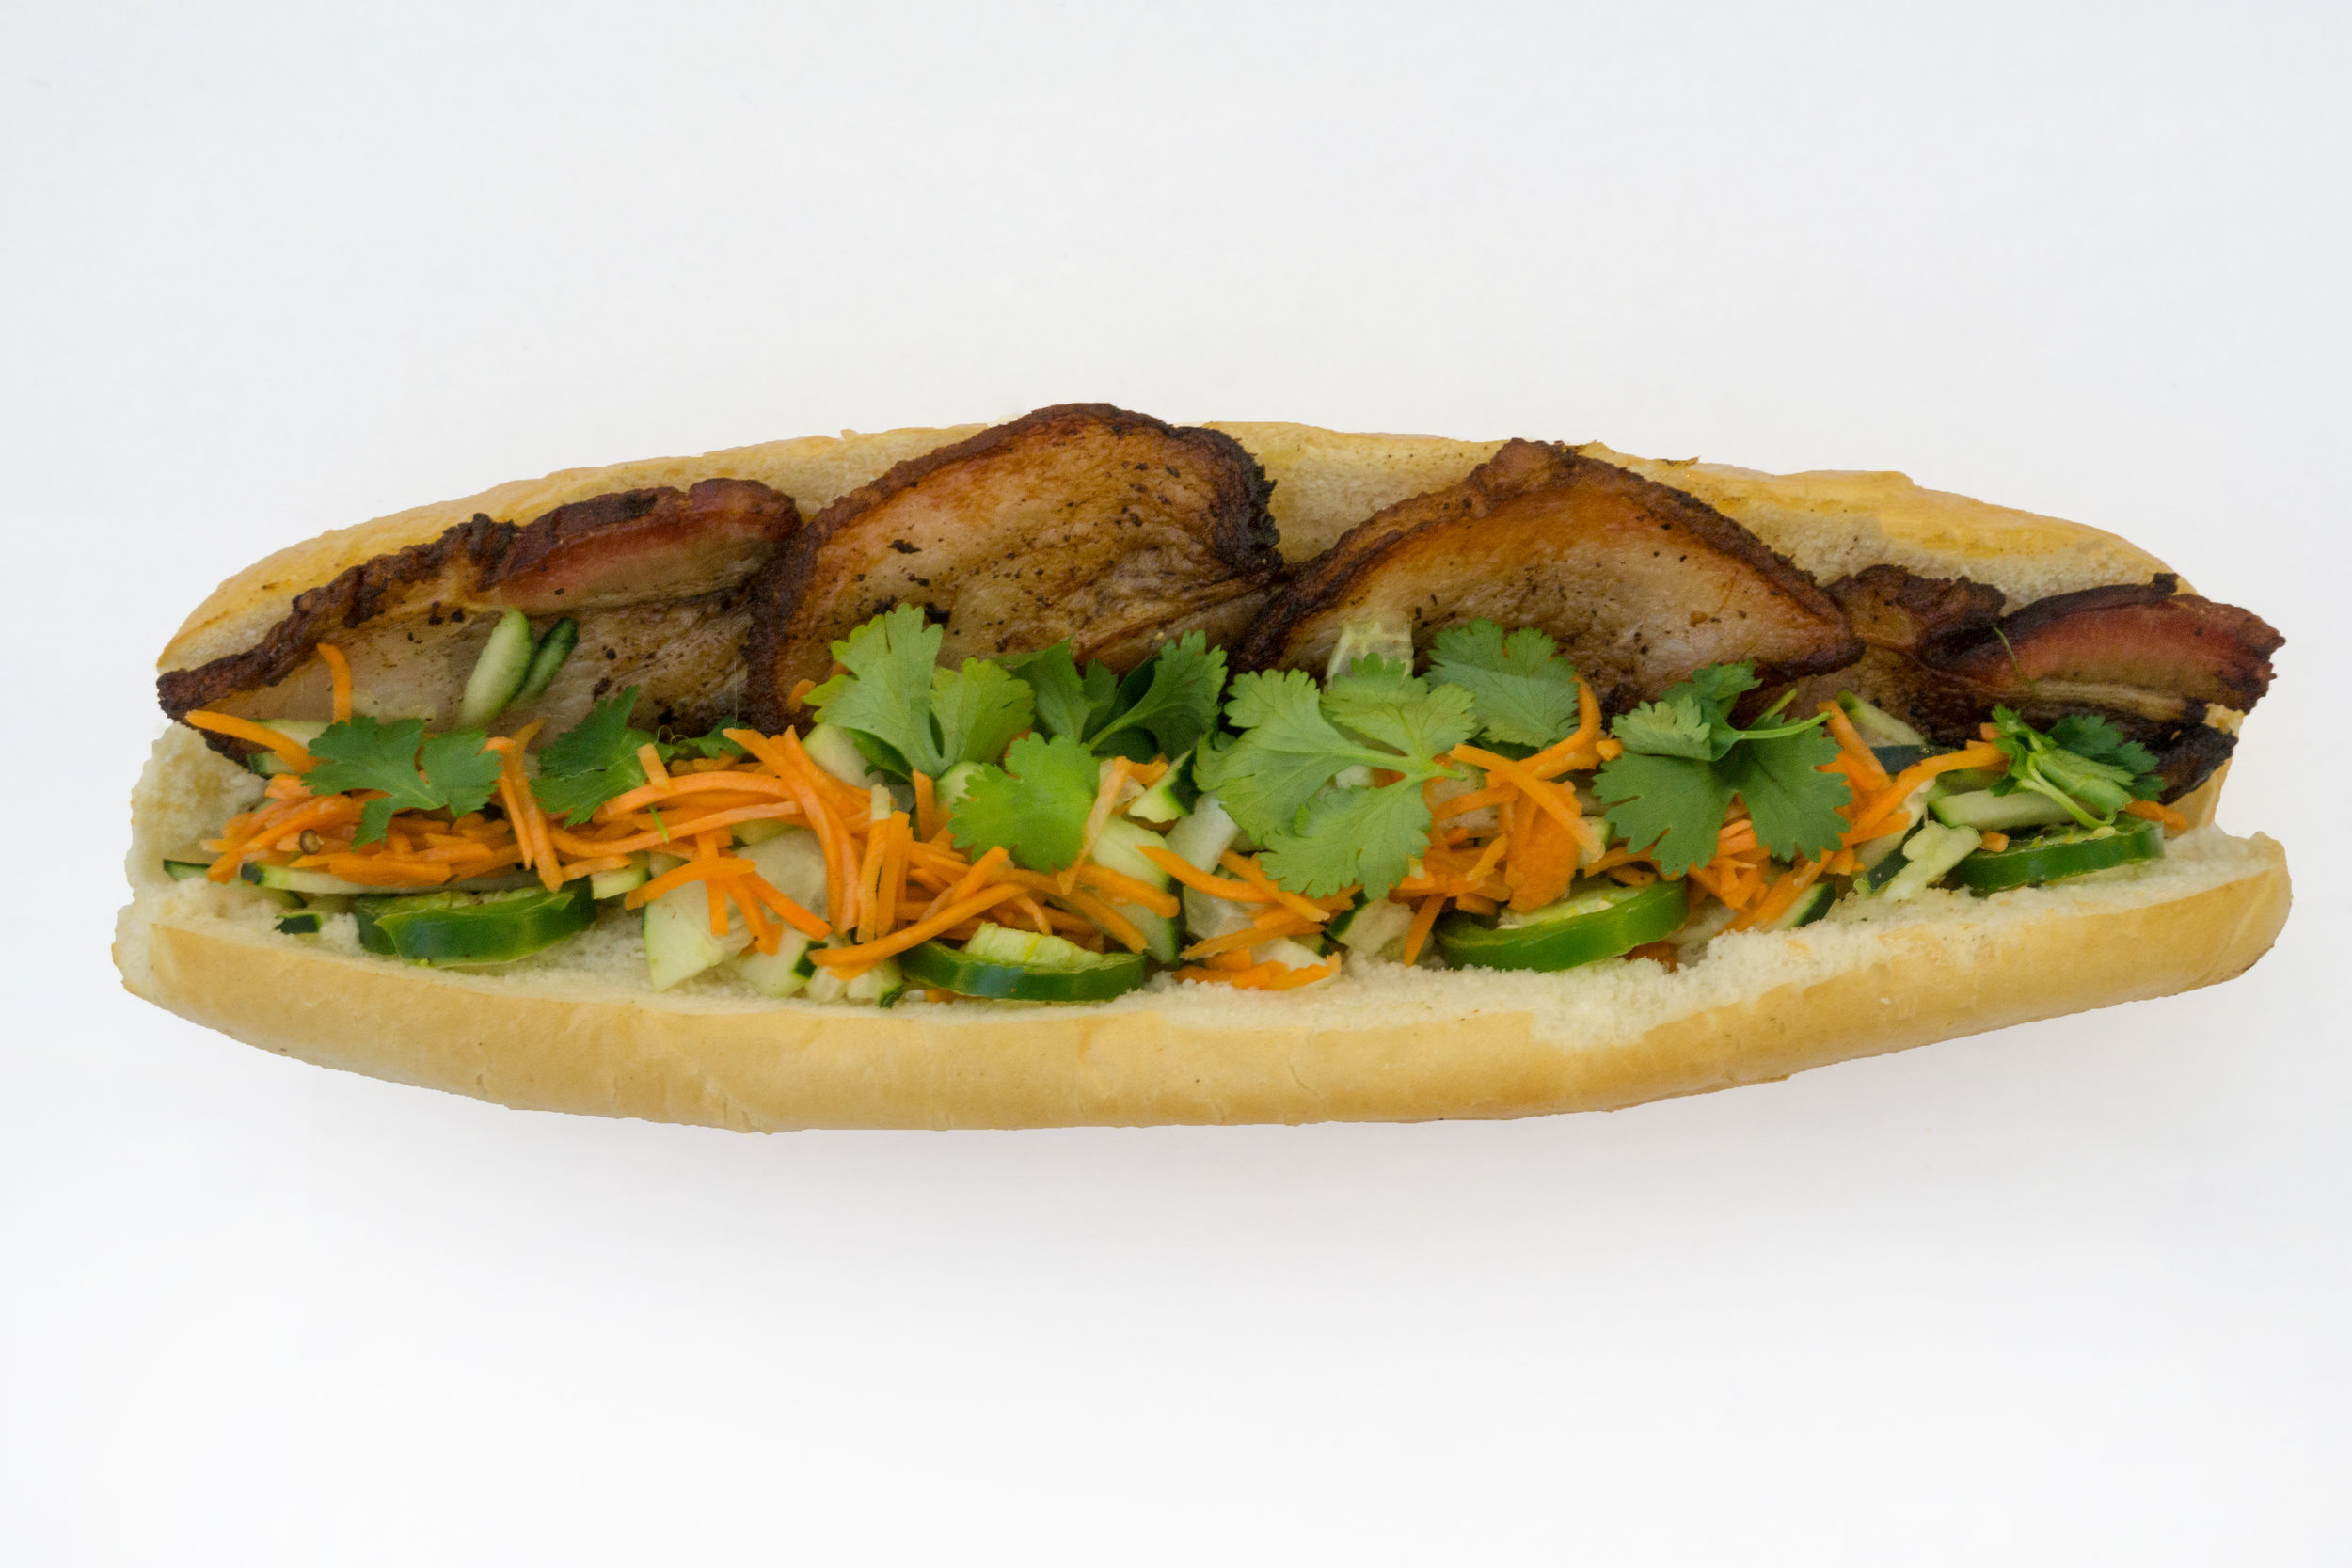 Pork Belly Banh Mi: You can never go wrong with some juicy pork belly.